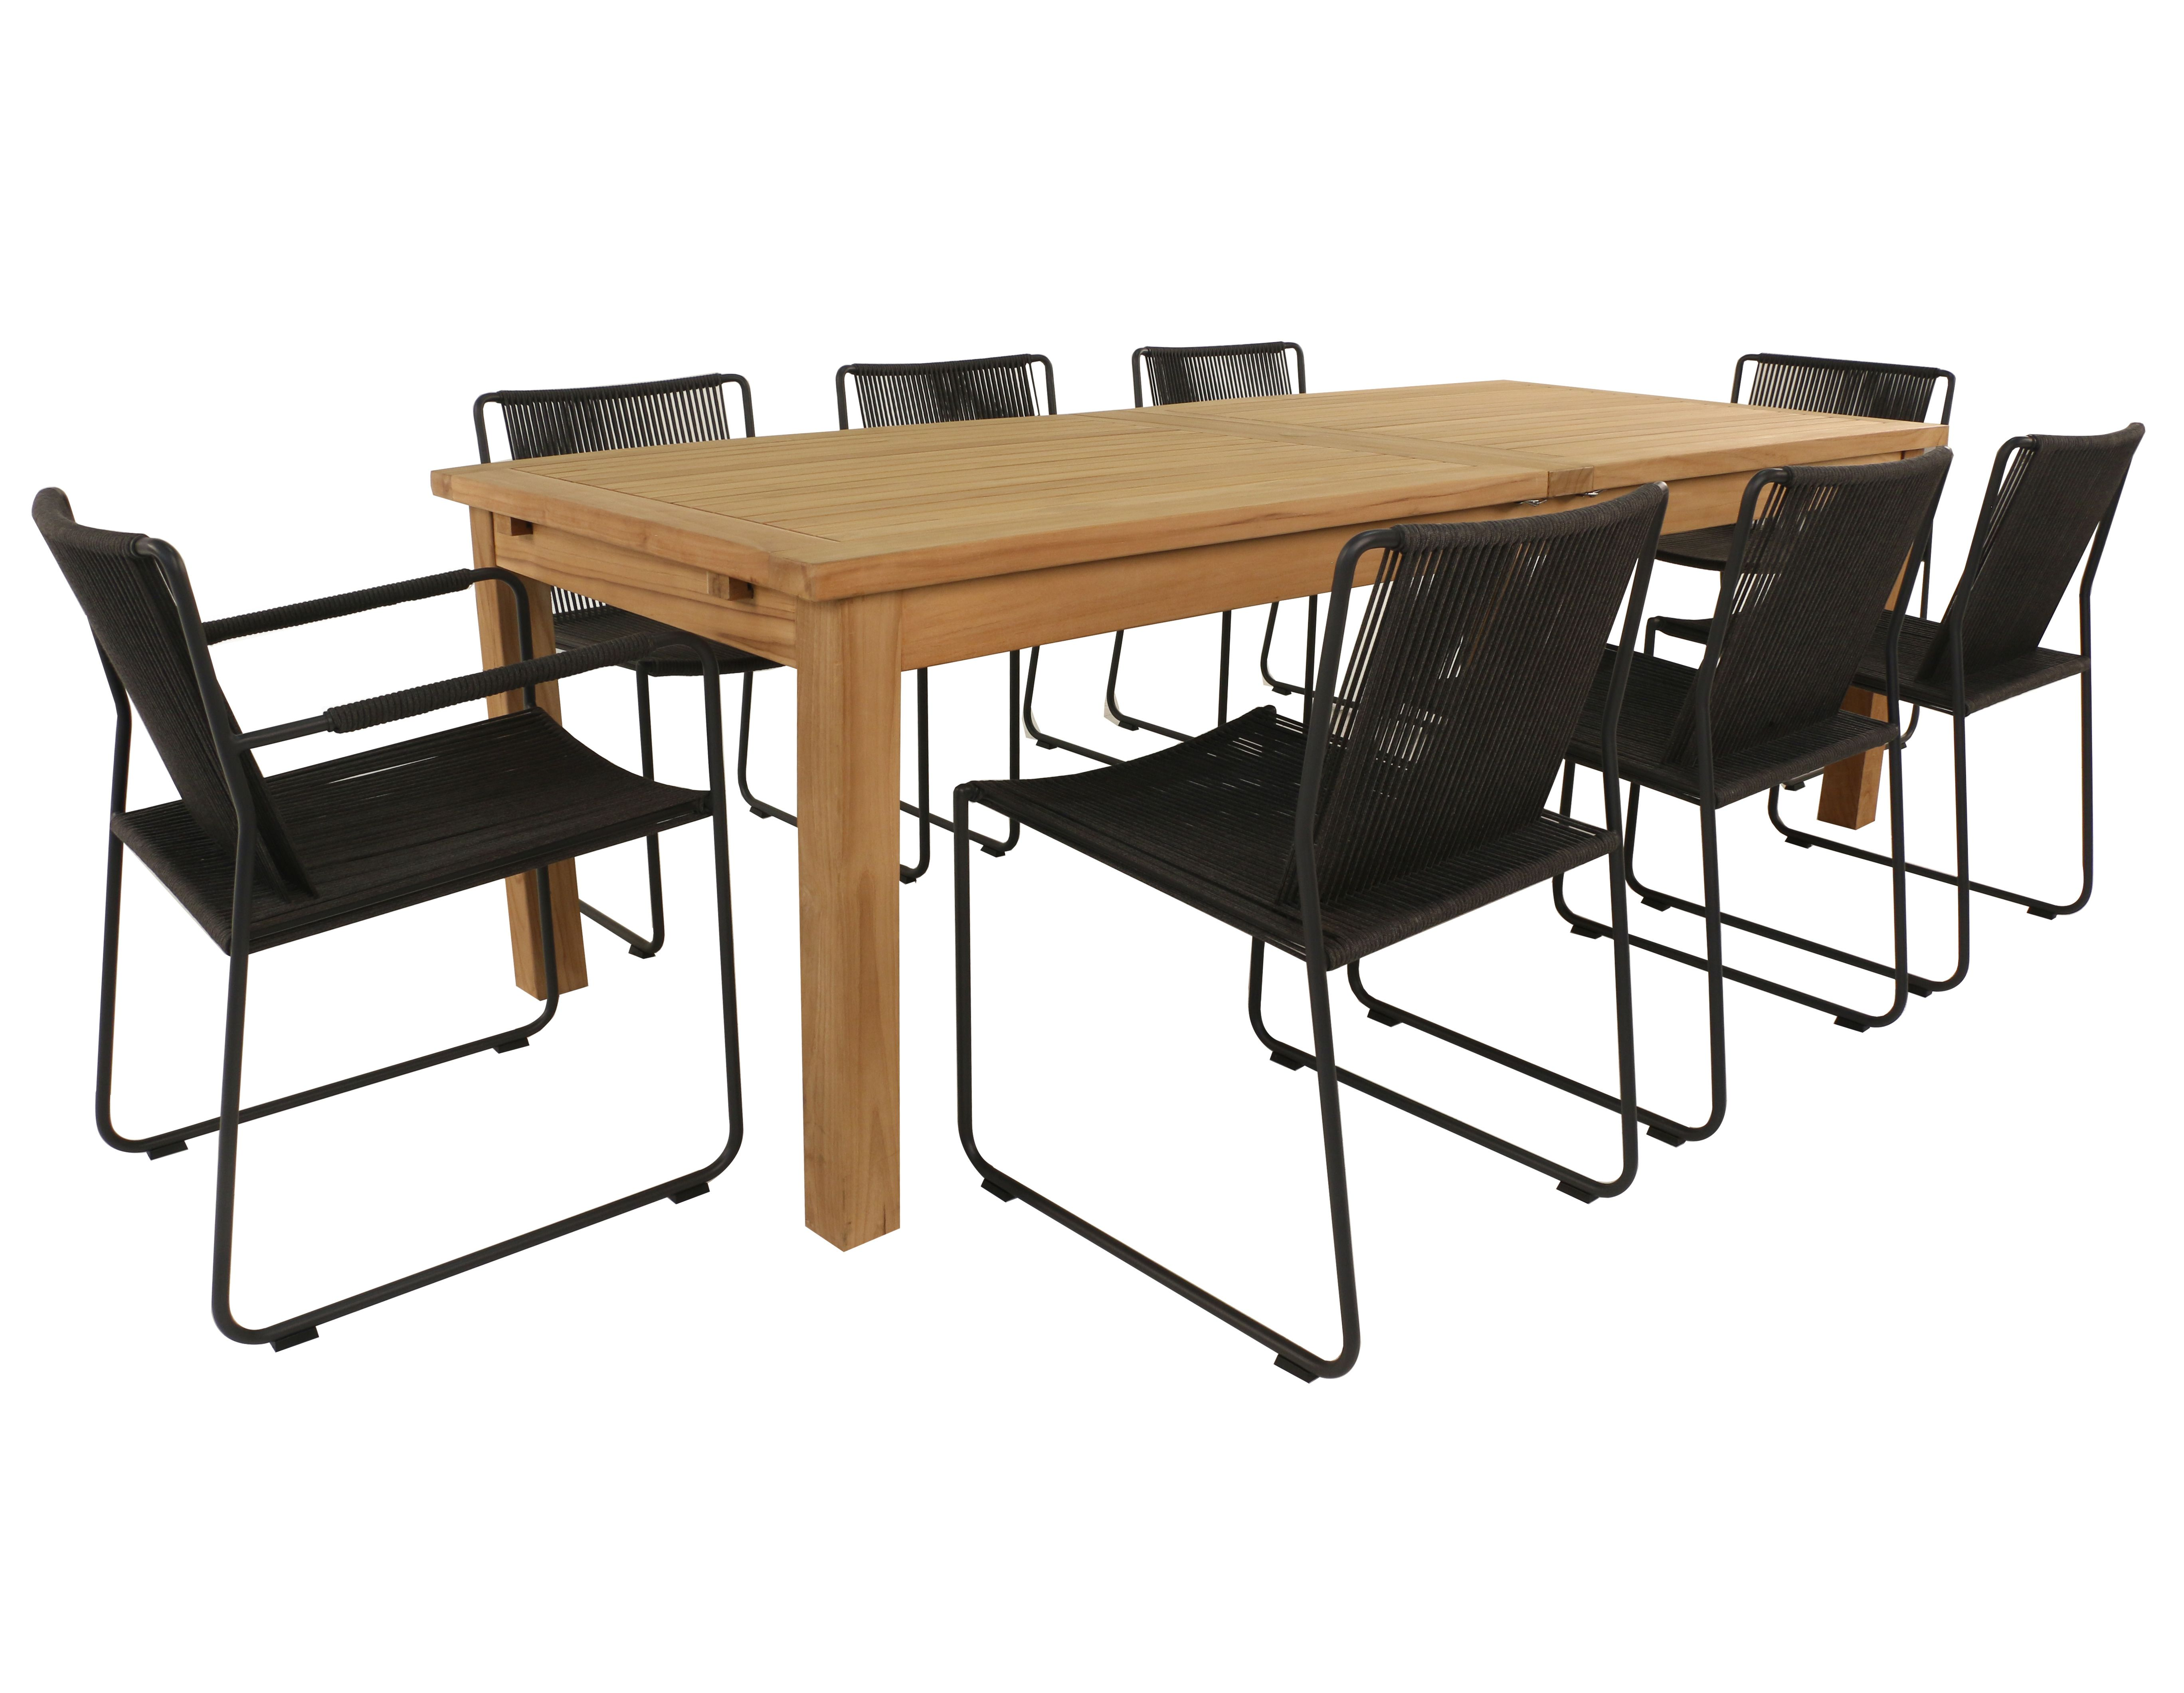 Just Because You Love A Teak Dining Table Doesn T Mean You Have To Go With Teak Dining Chairs Wicker Outdoor Dining Set Teak Dining Chairs Teak Dining Table